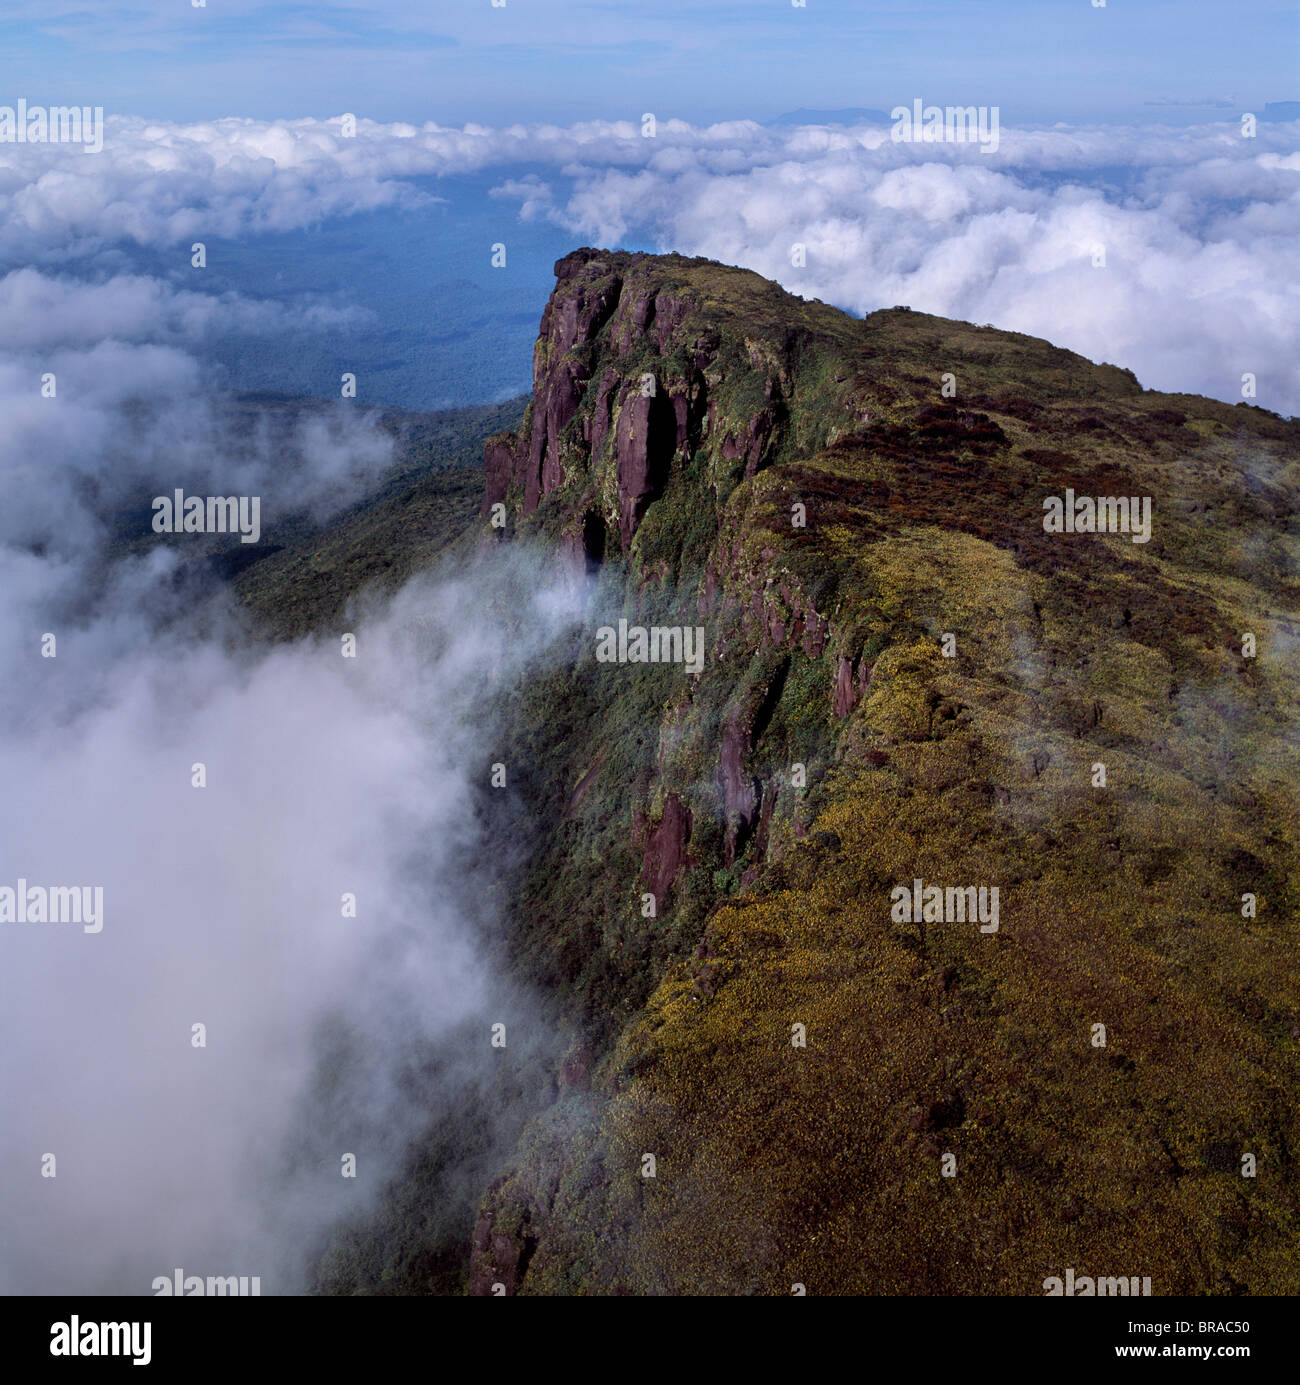 Aerial image of Ayanganna Mountain, Guyana, South America - Stock Image